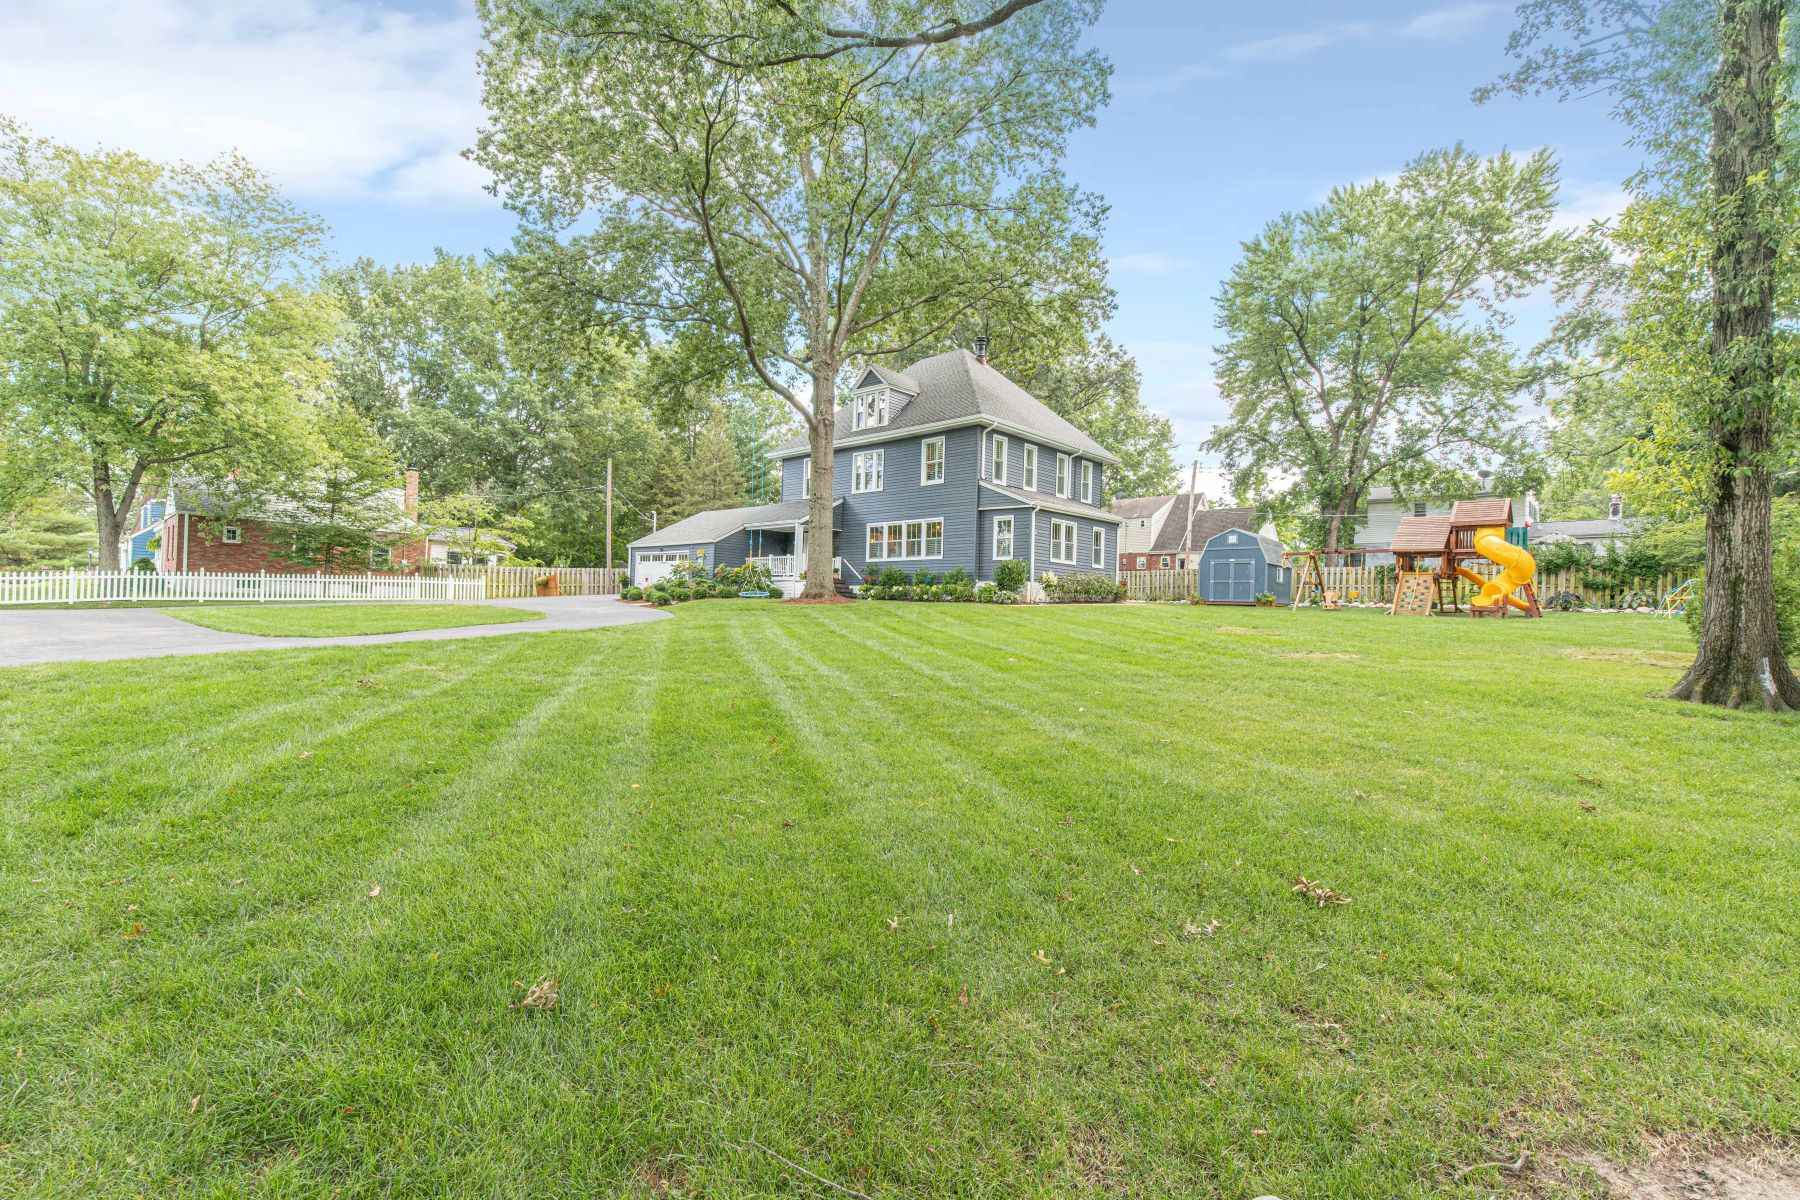 Single Family Homes for Sale at Designer renovated farmhouse on over 1/2 acre in Glendale! 808 East Essex Avenue Glendale, Missouri 63122 United States